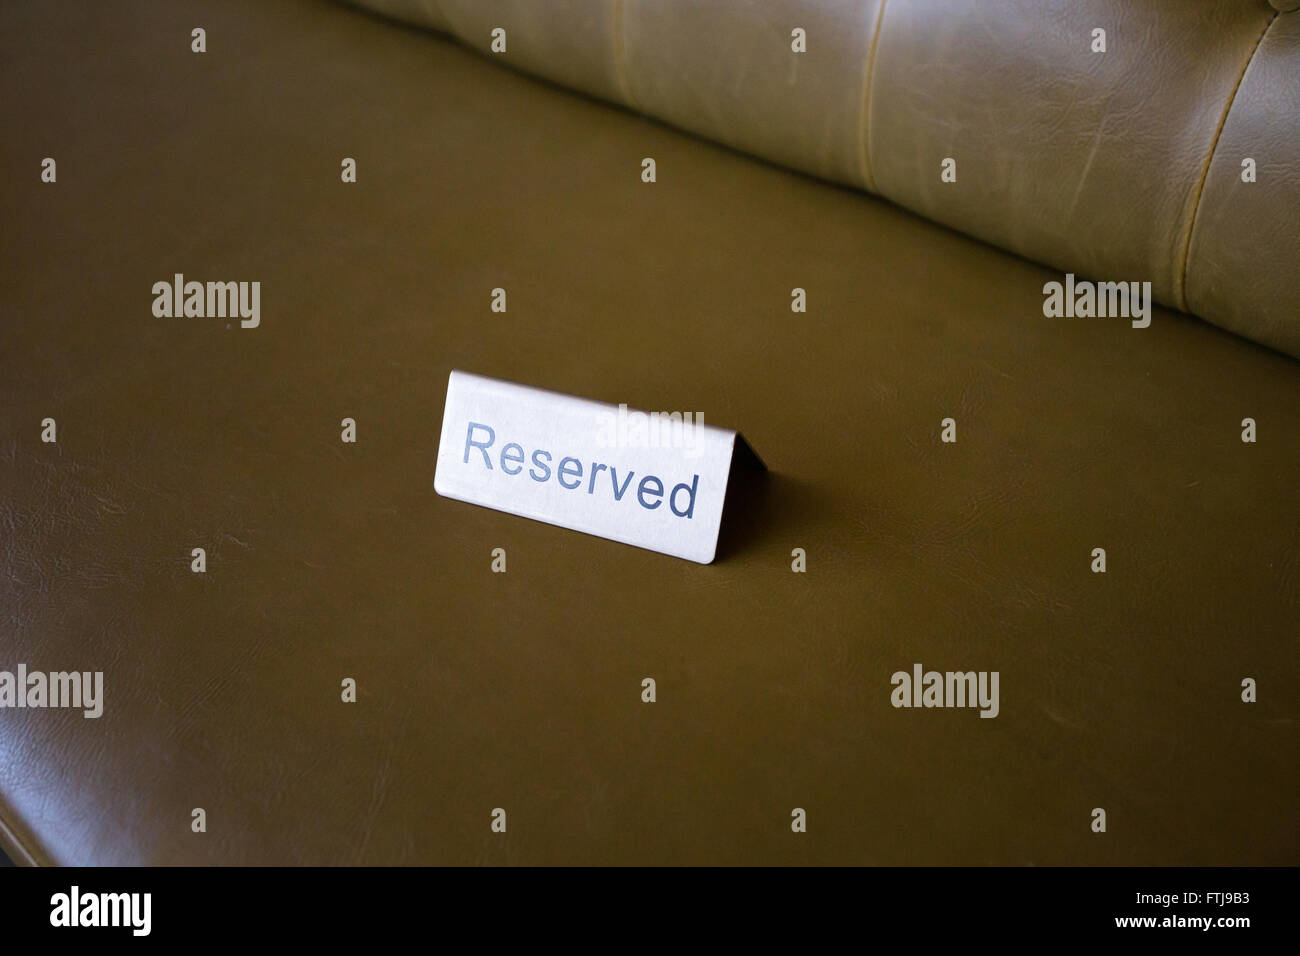 Reserved seats at a wedding ceremony and reception shown with this metal tag. - Stock Image